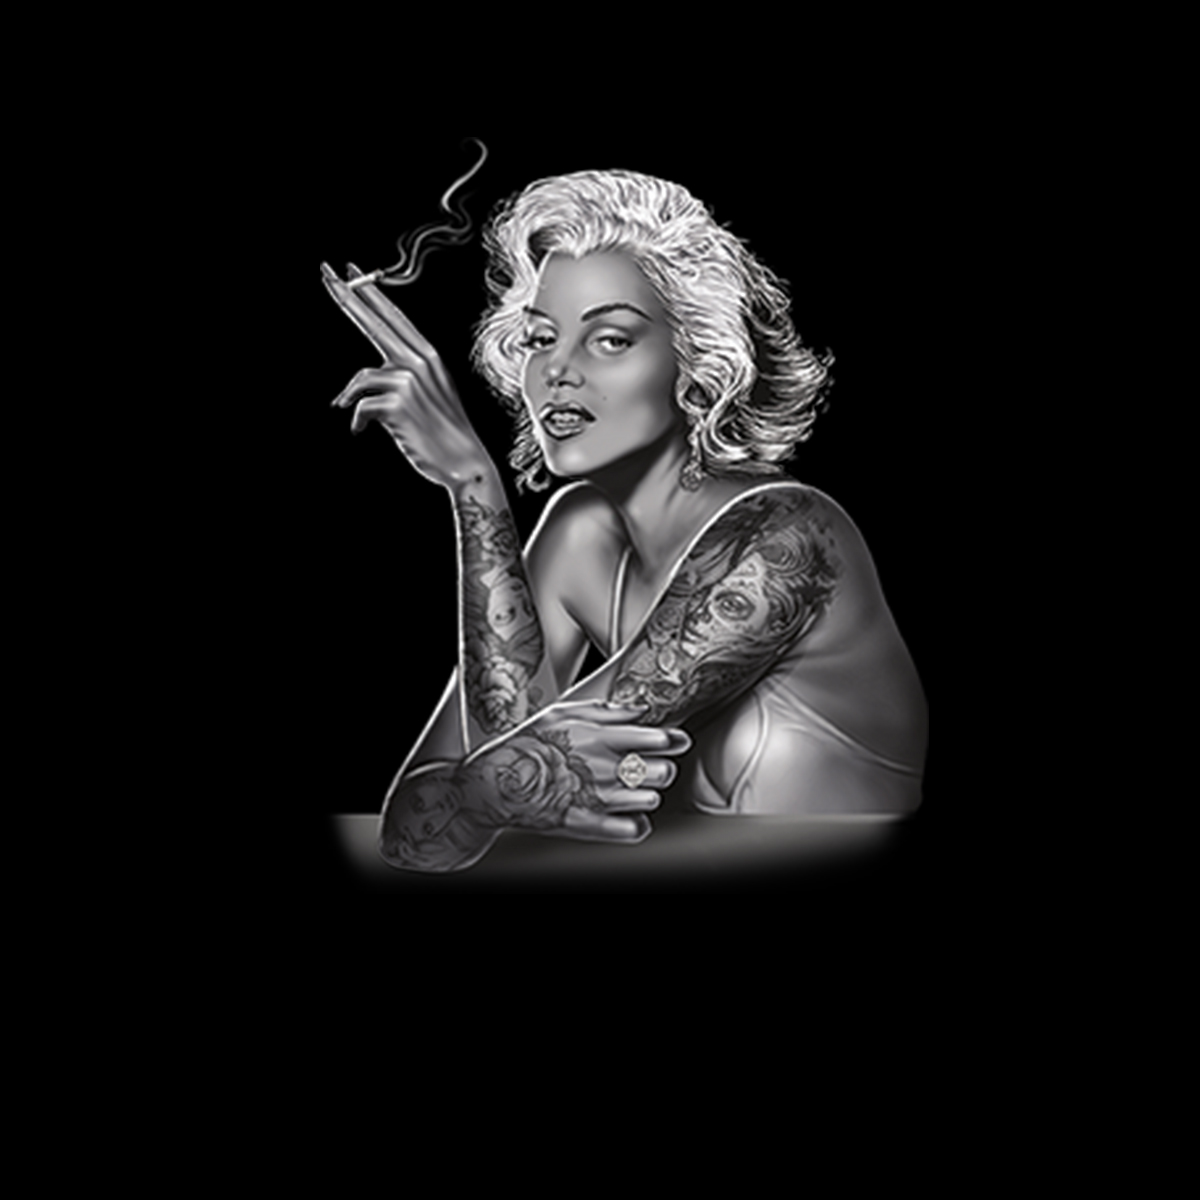 Marilyn-Monroe-Smoking-Tattoo-Men-T-shirt-XS-5XL thumbnail 3